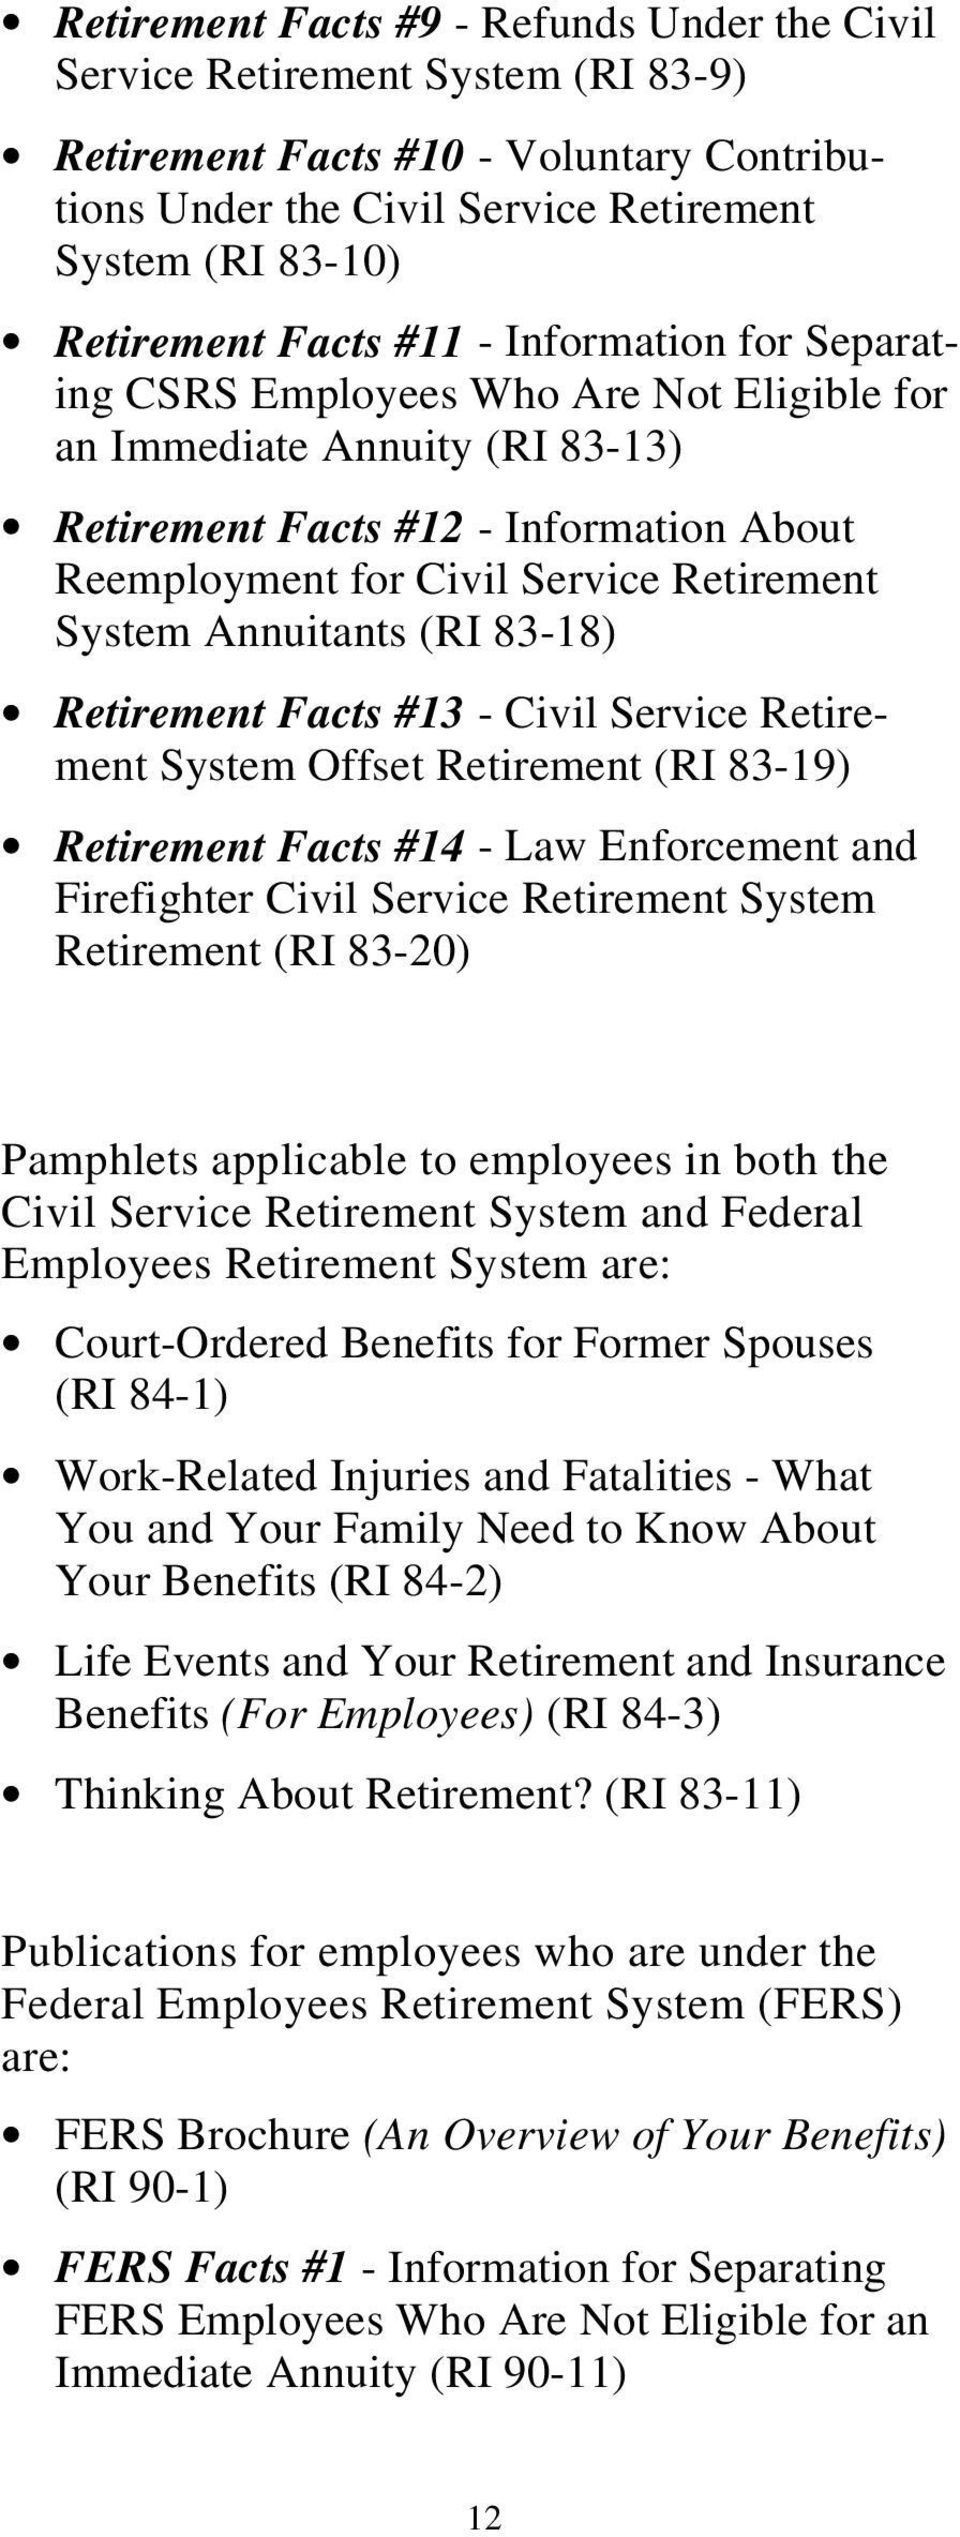 Annuitants (RI 83-18) Retirement Facts #13 - Civil Service Retirement System Offset Retirement (RI 83-19) Retirement Facts #14 - Law Enforcement and Firefighter Civil Service Retirement System